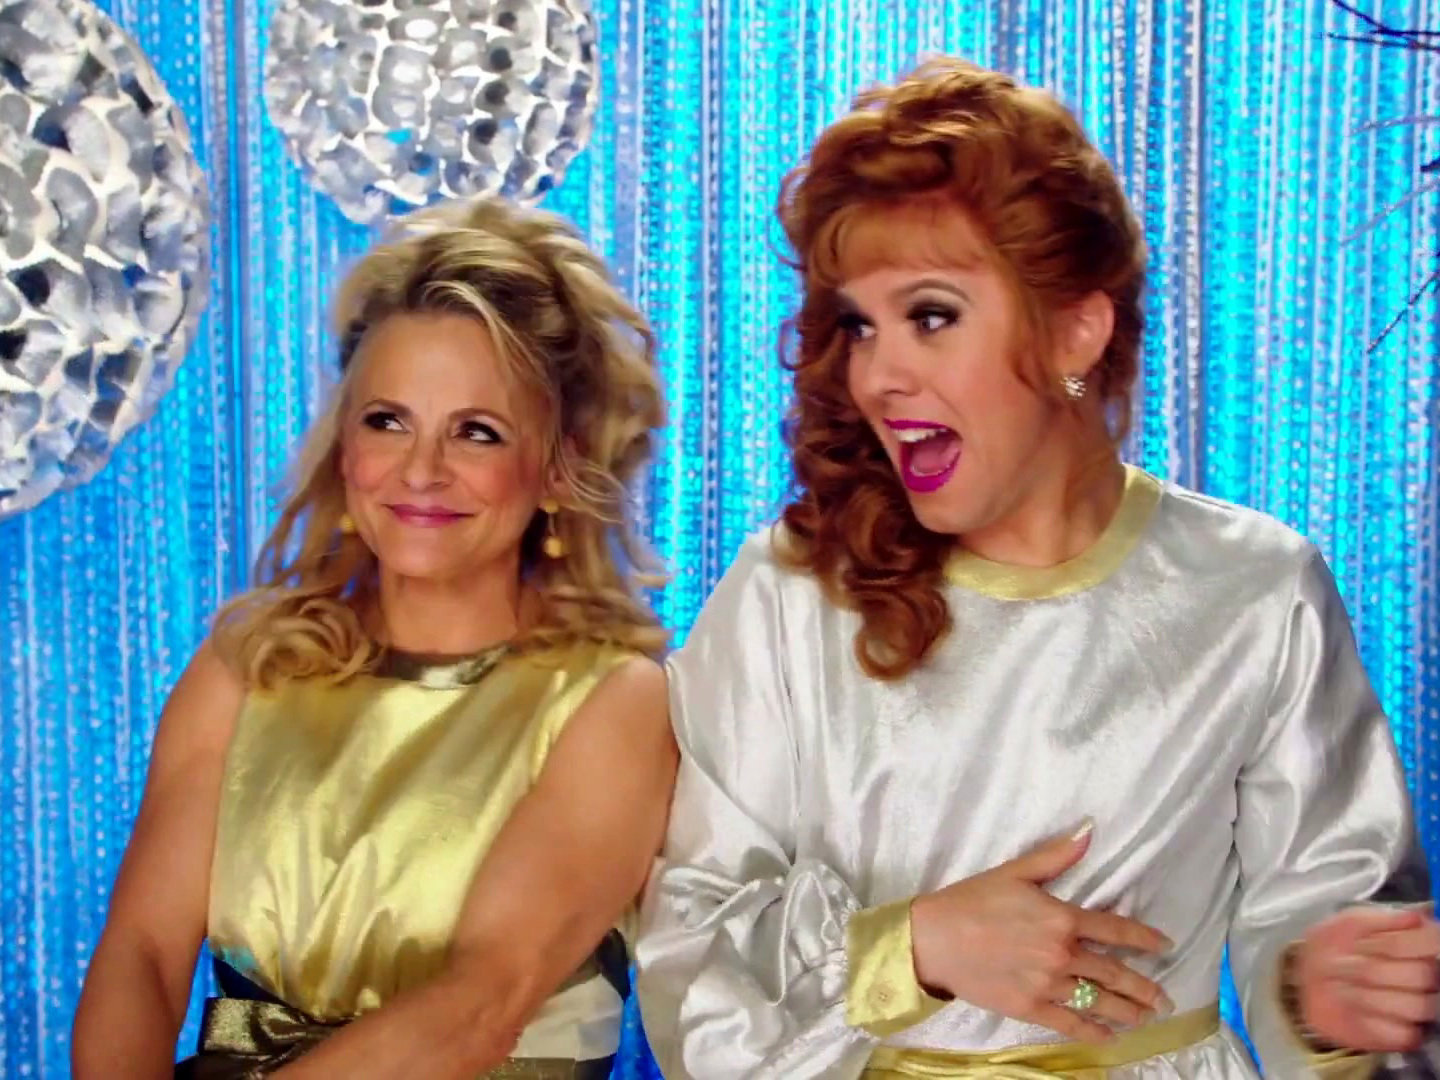 At Home with Amy Sedaris: Amy and Chassie's Treasured Memories